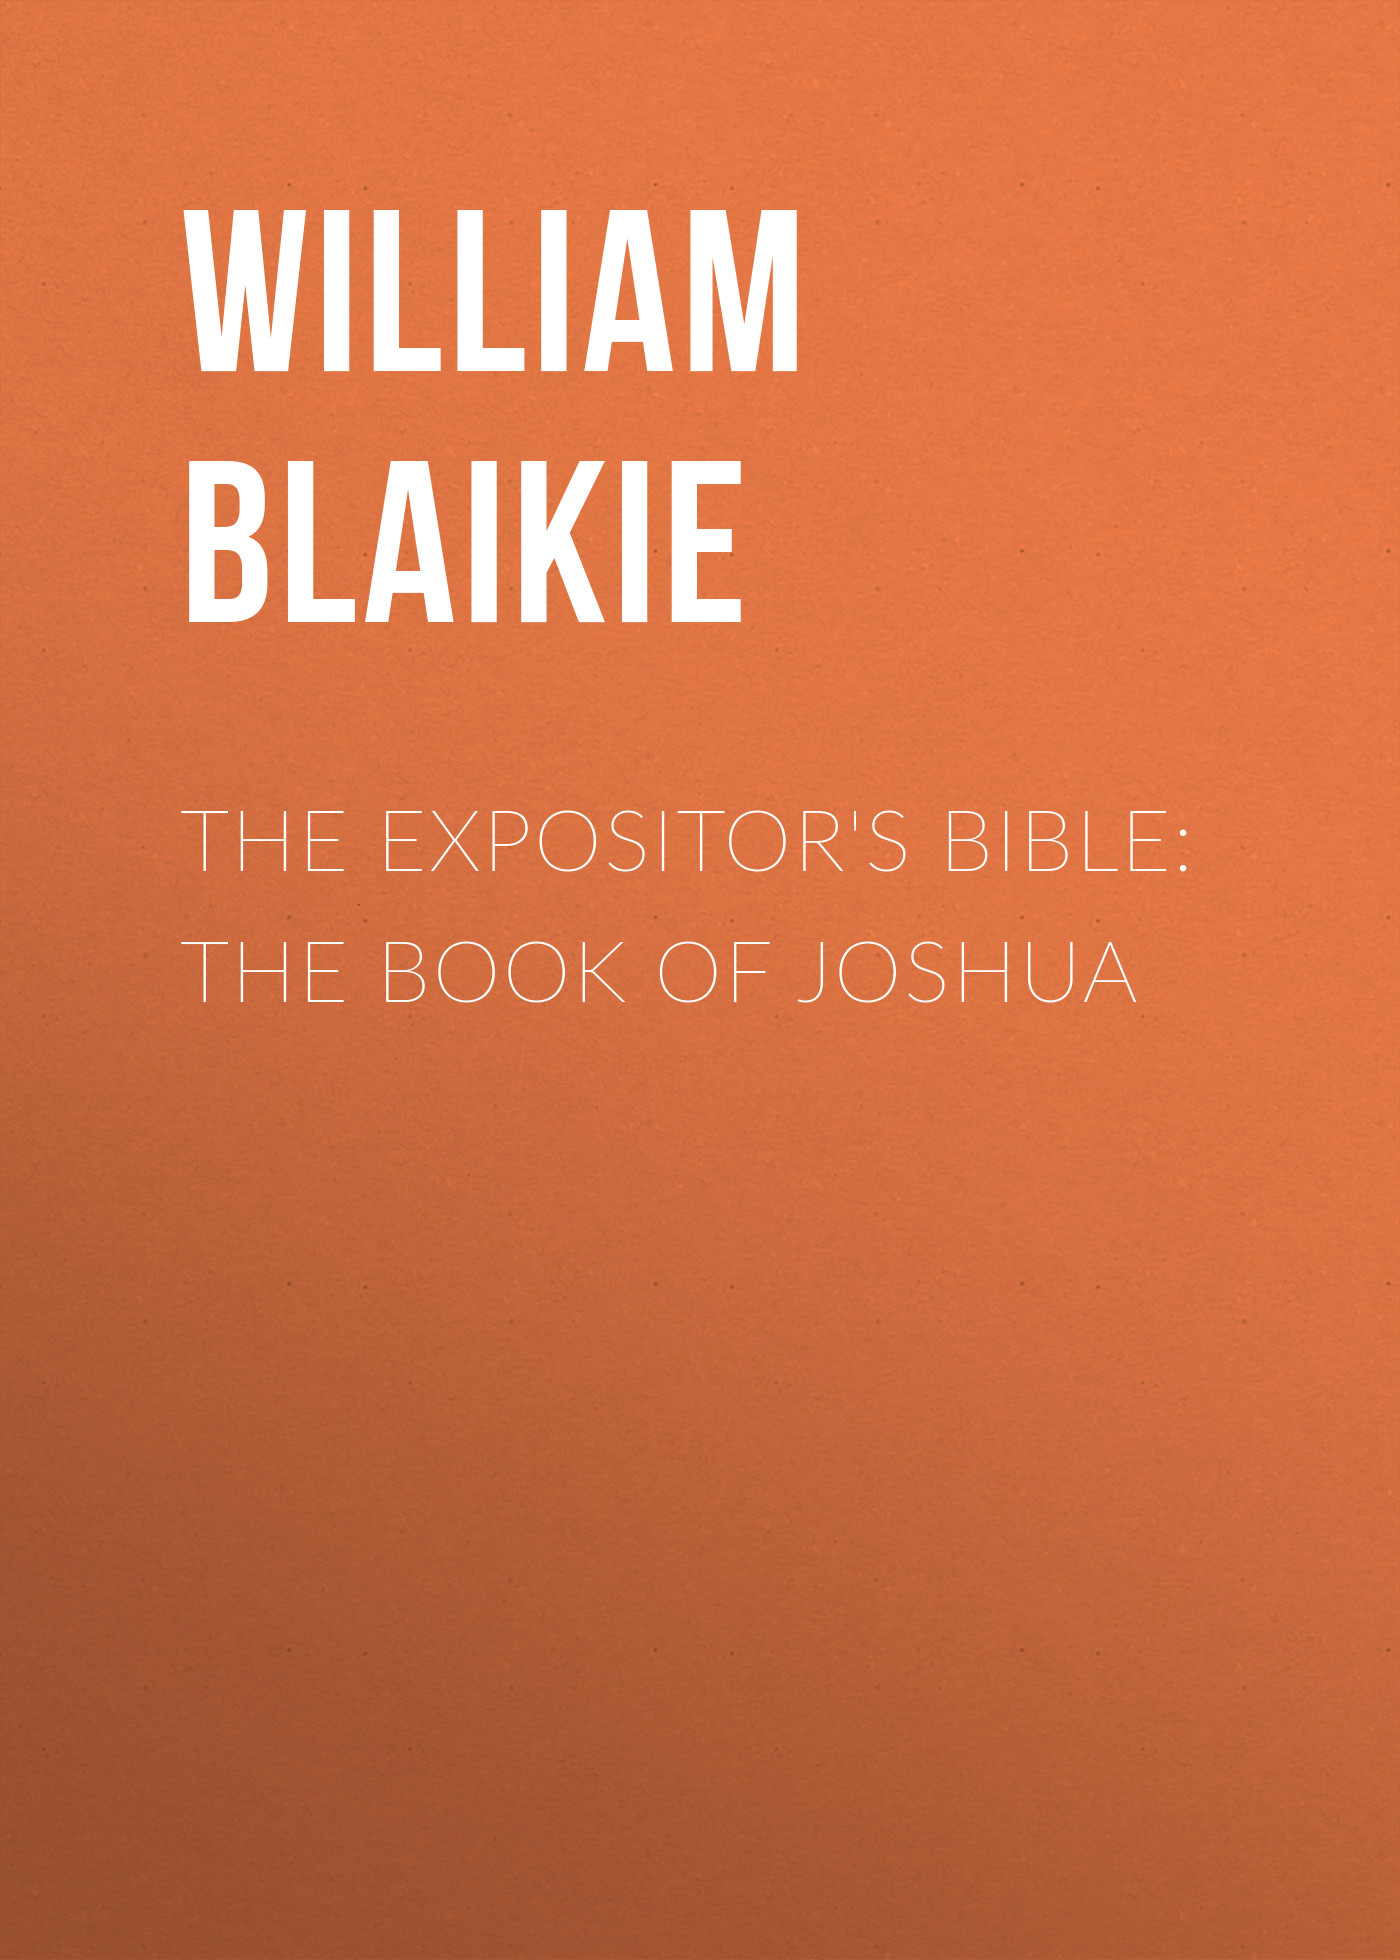 William Garden Blaikie The Expositor's Bible: The Book of Joshua william garden blaikie the book of joshua v 6